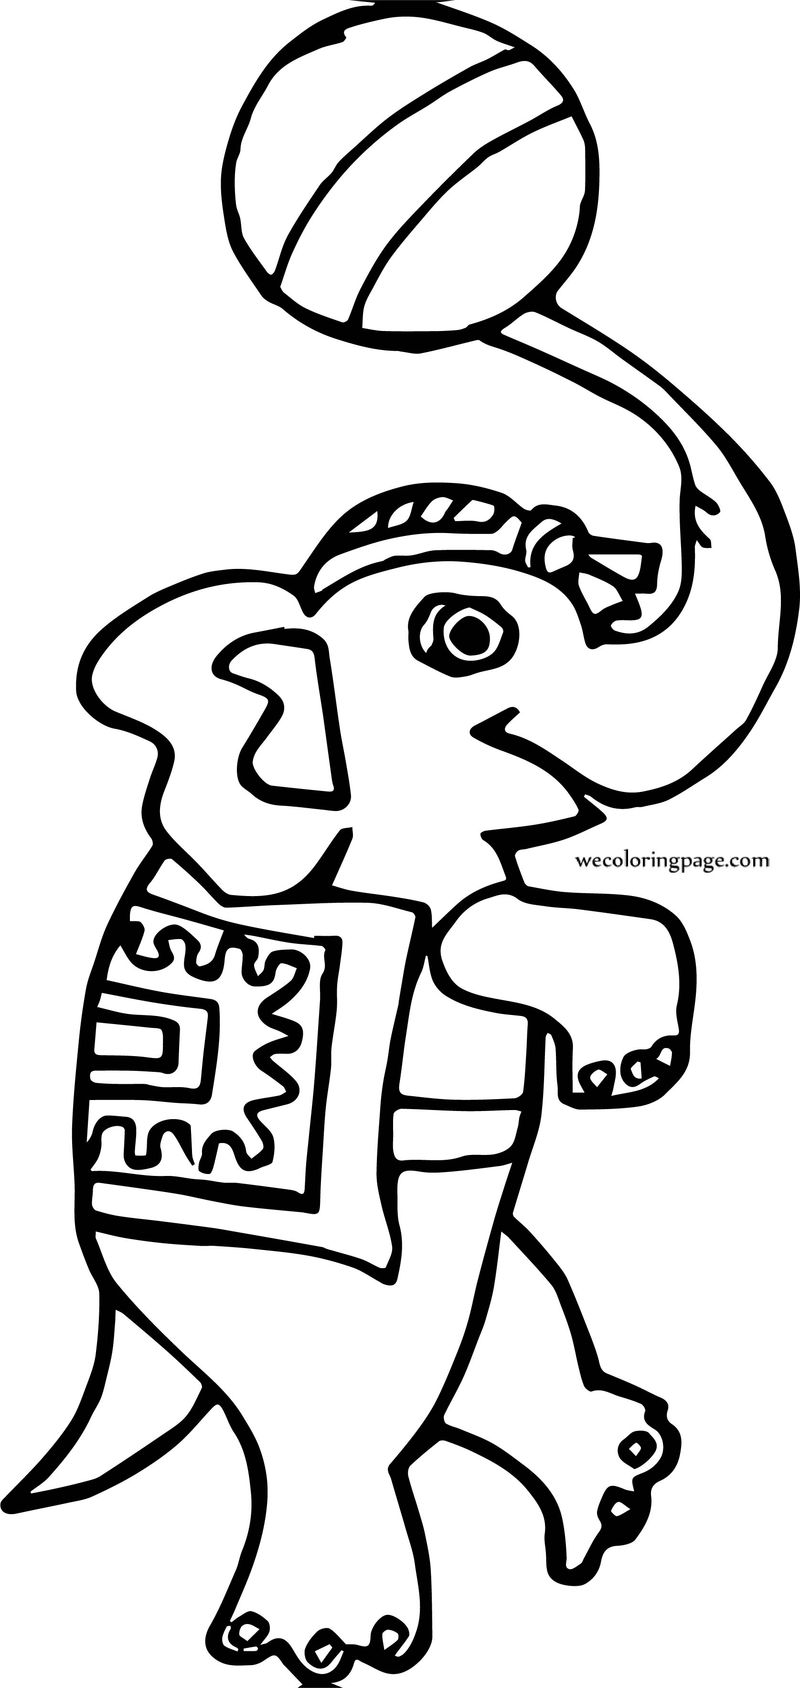 Circus Elephant On Tongue Coloring Page